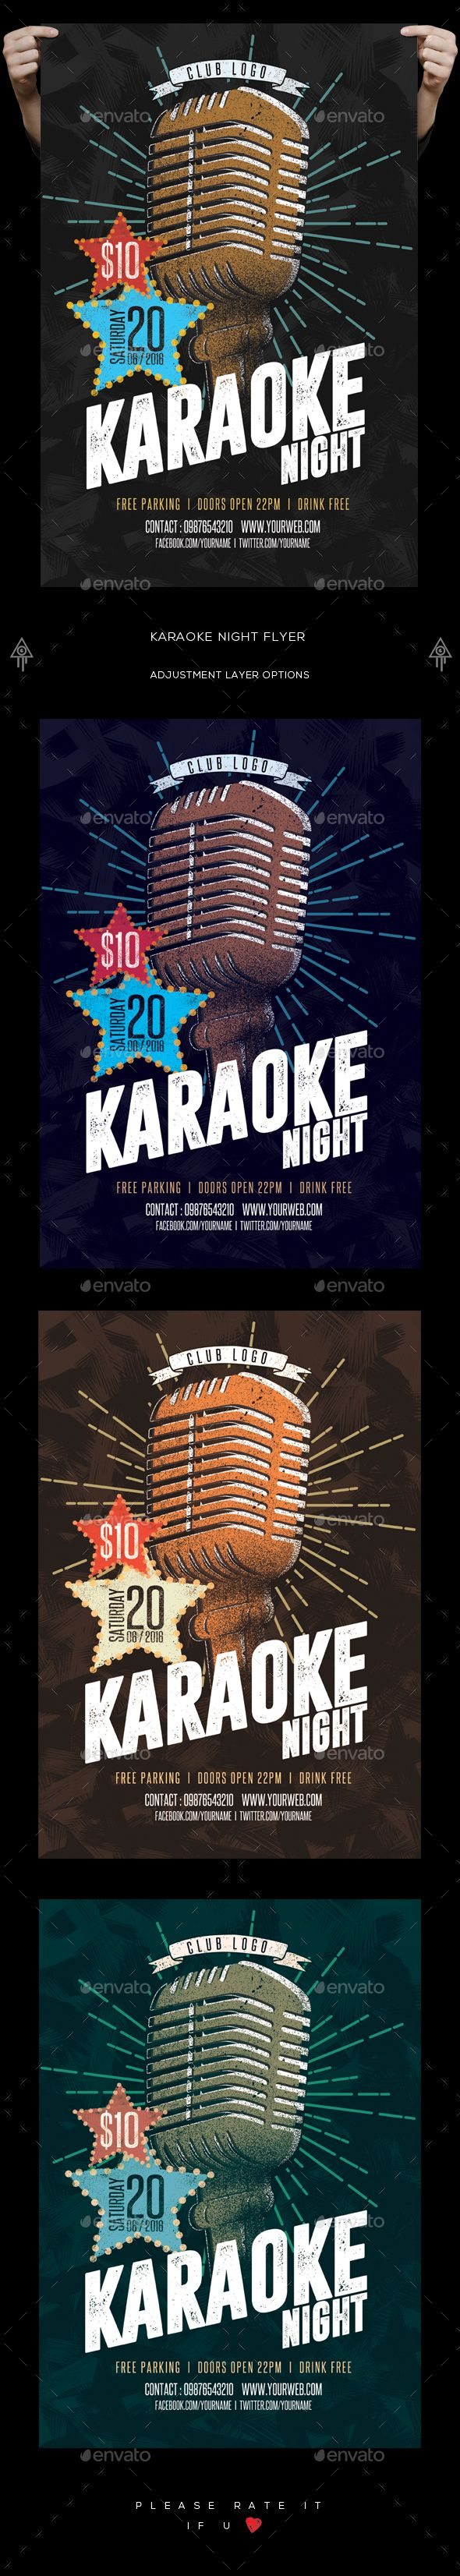 Karaoke Night Flyer  Karaoke Psd Templates And Flyer Template